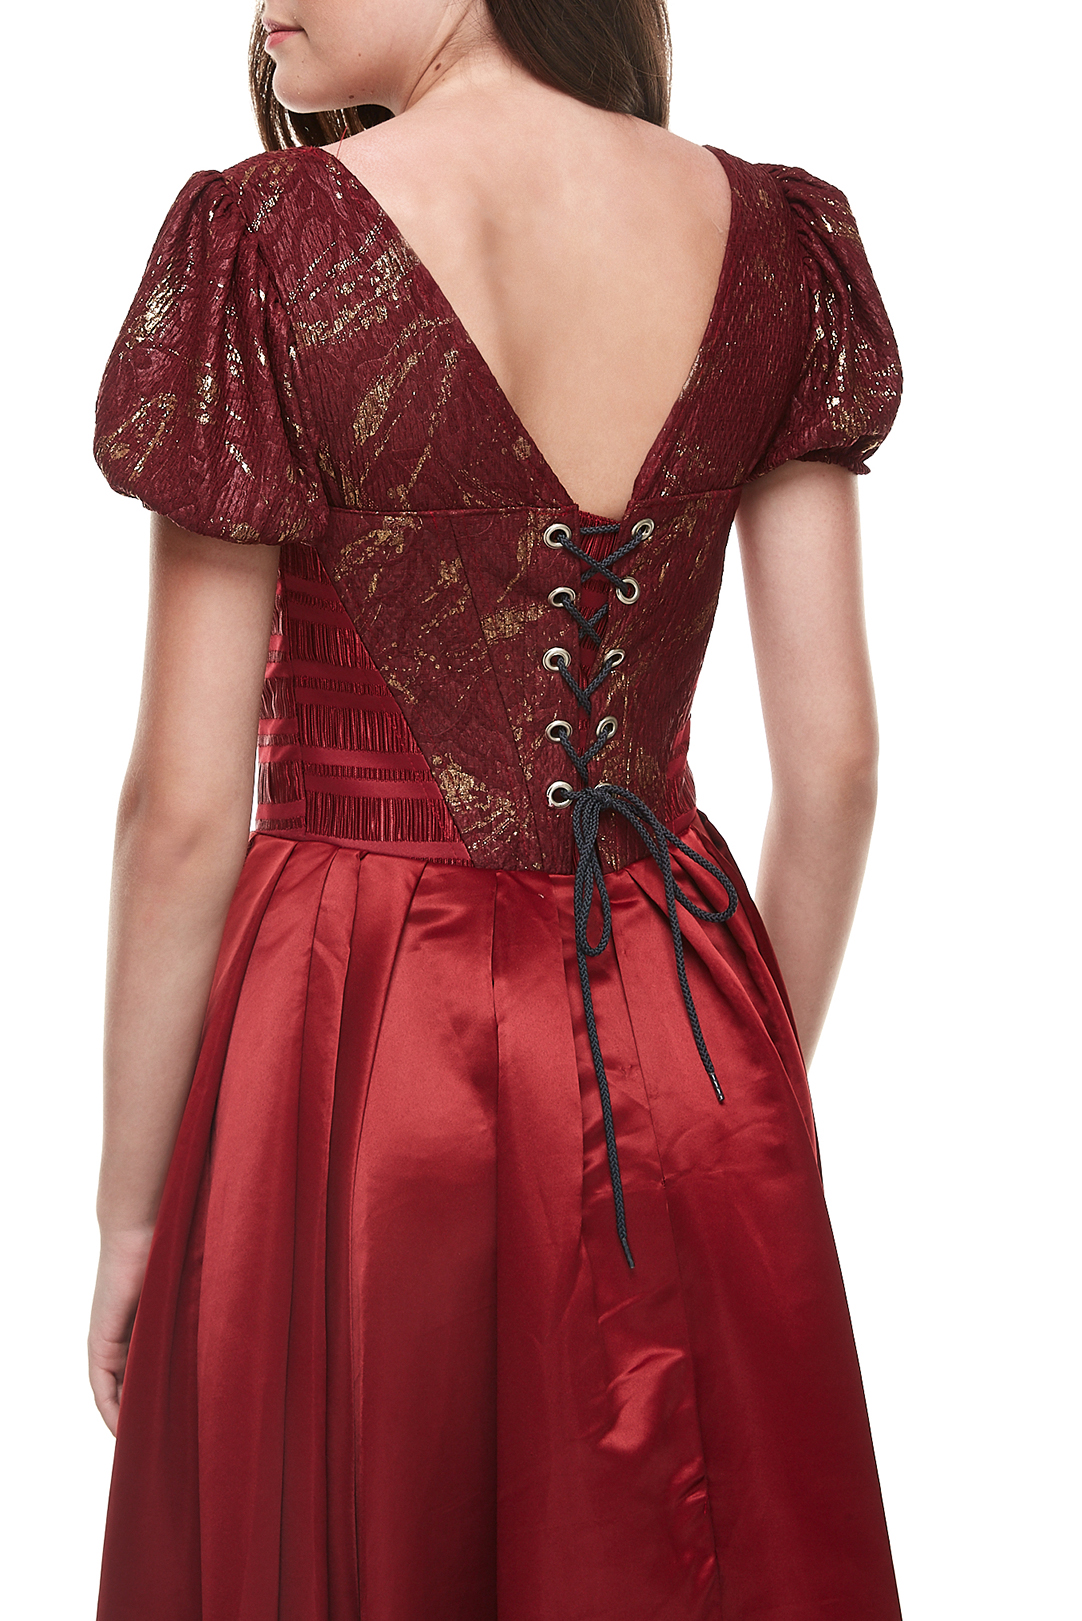 Adelise Gown